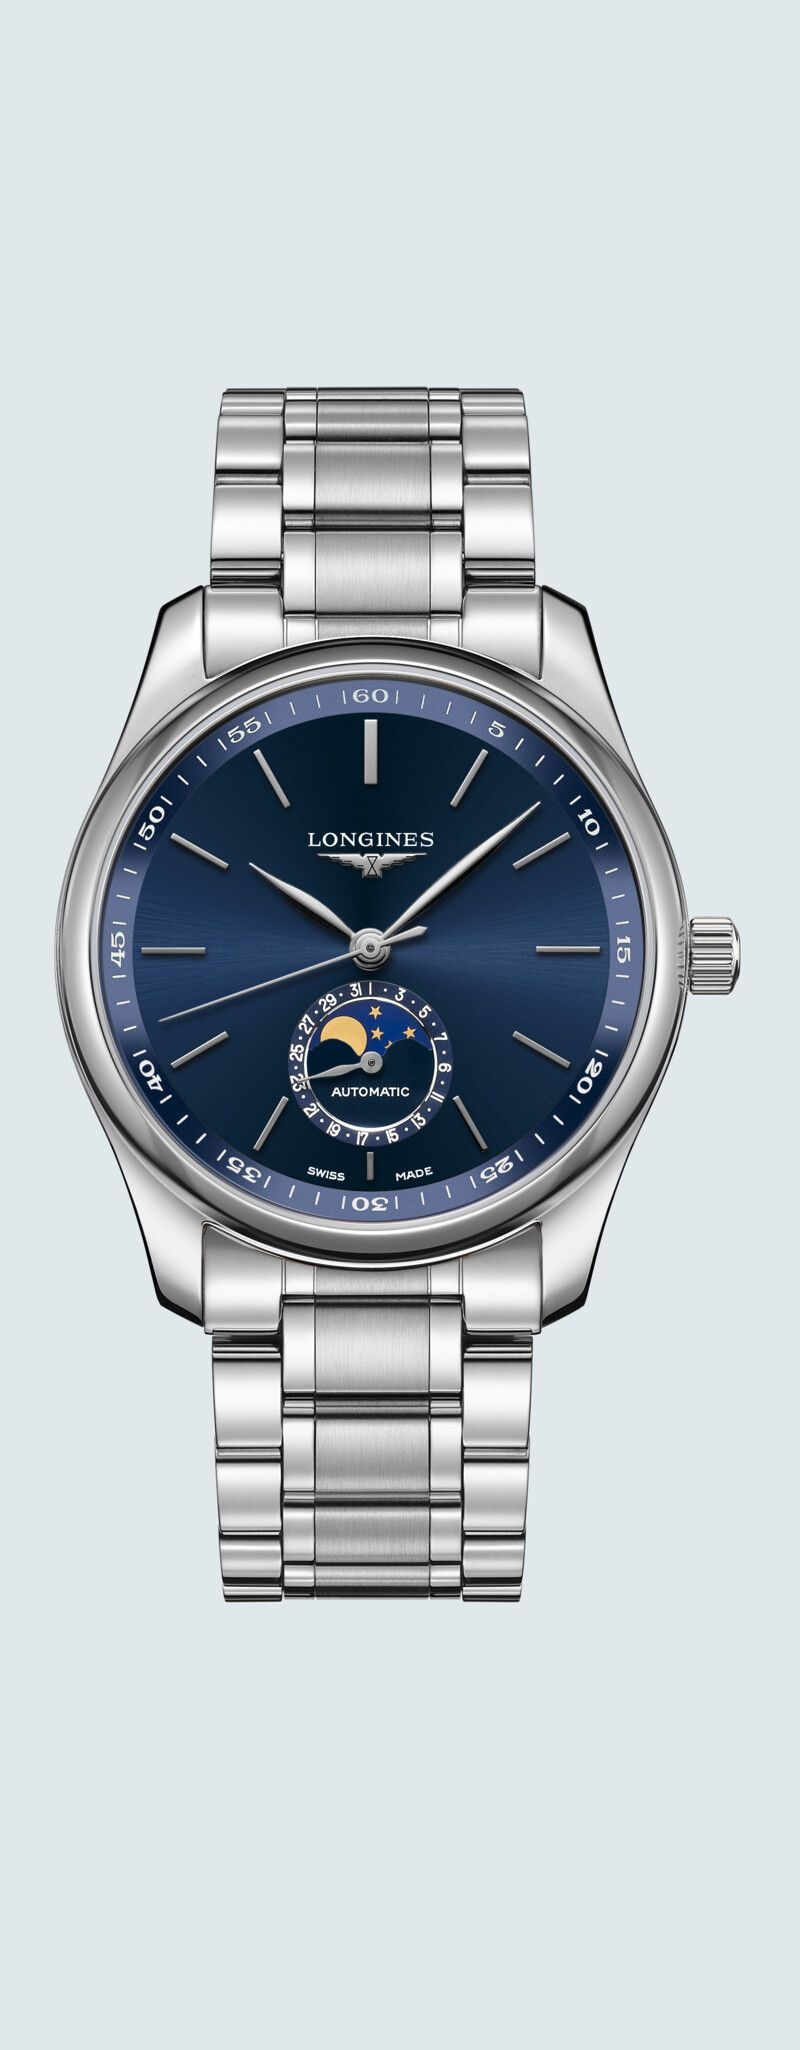 40.00 mm Stainless steel case with Sunray blue dial and Stainless steel strap - case zoom view